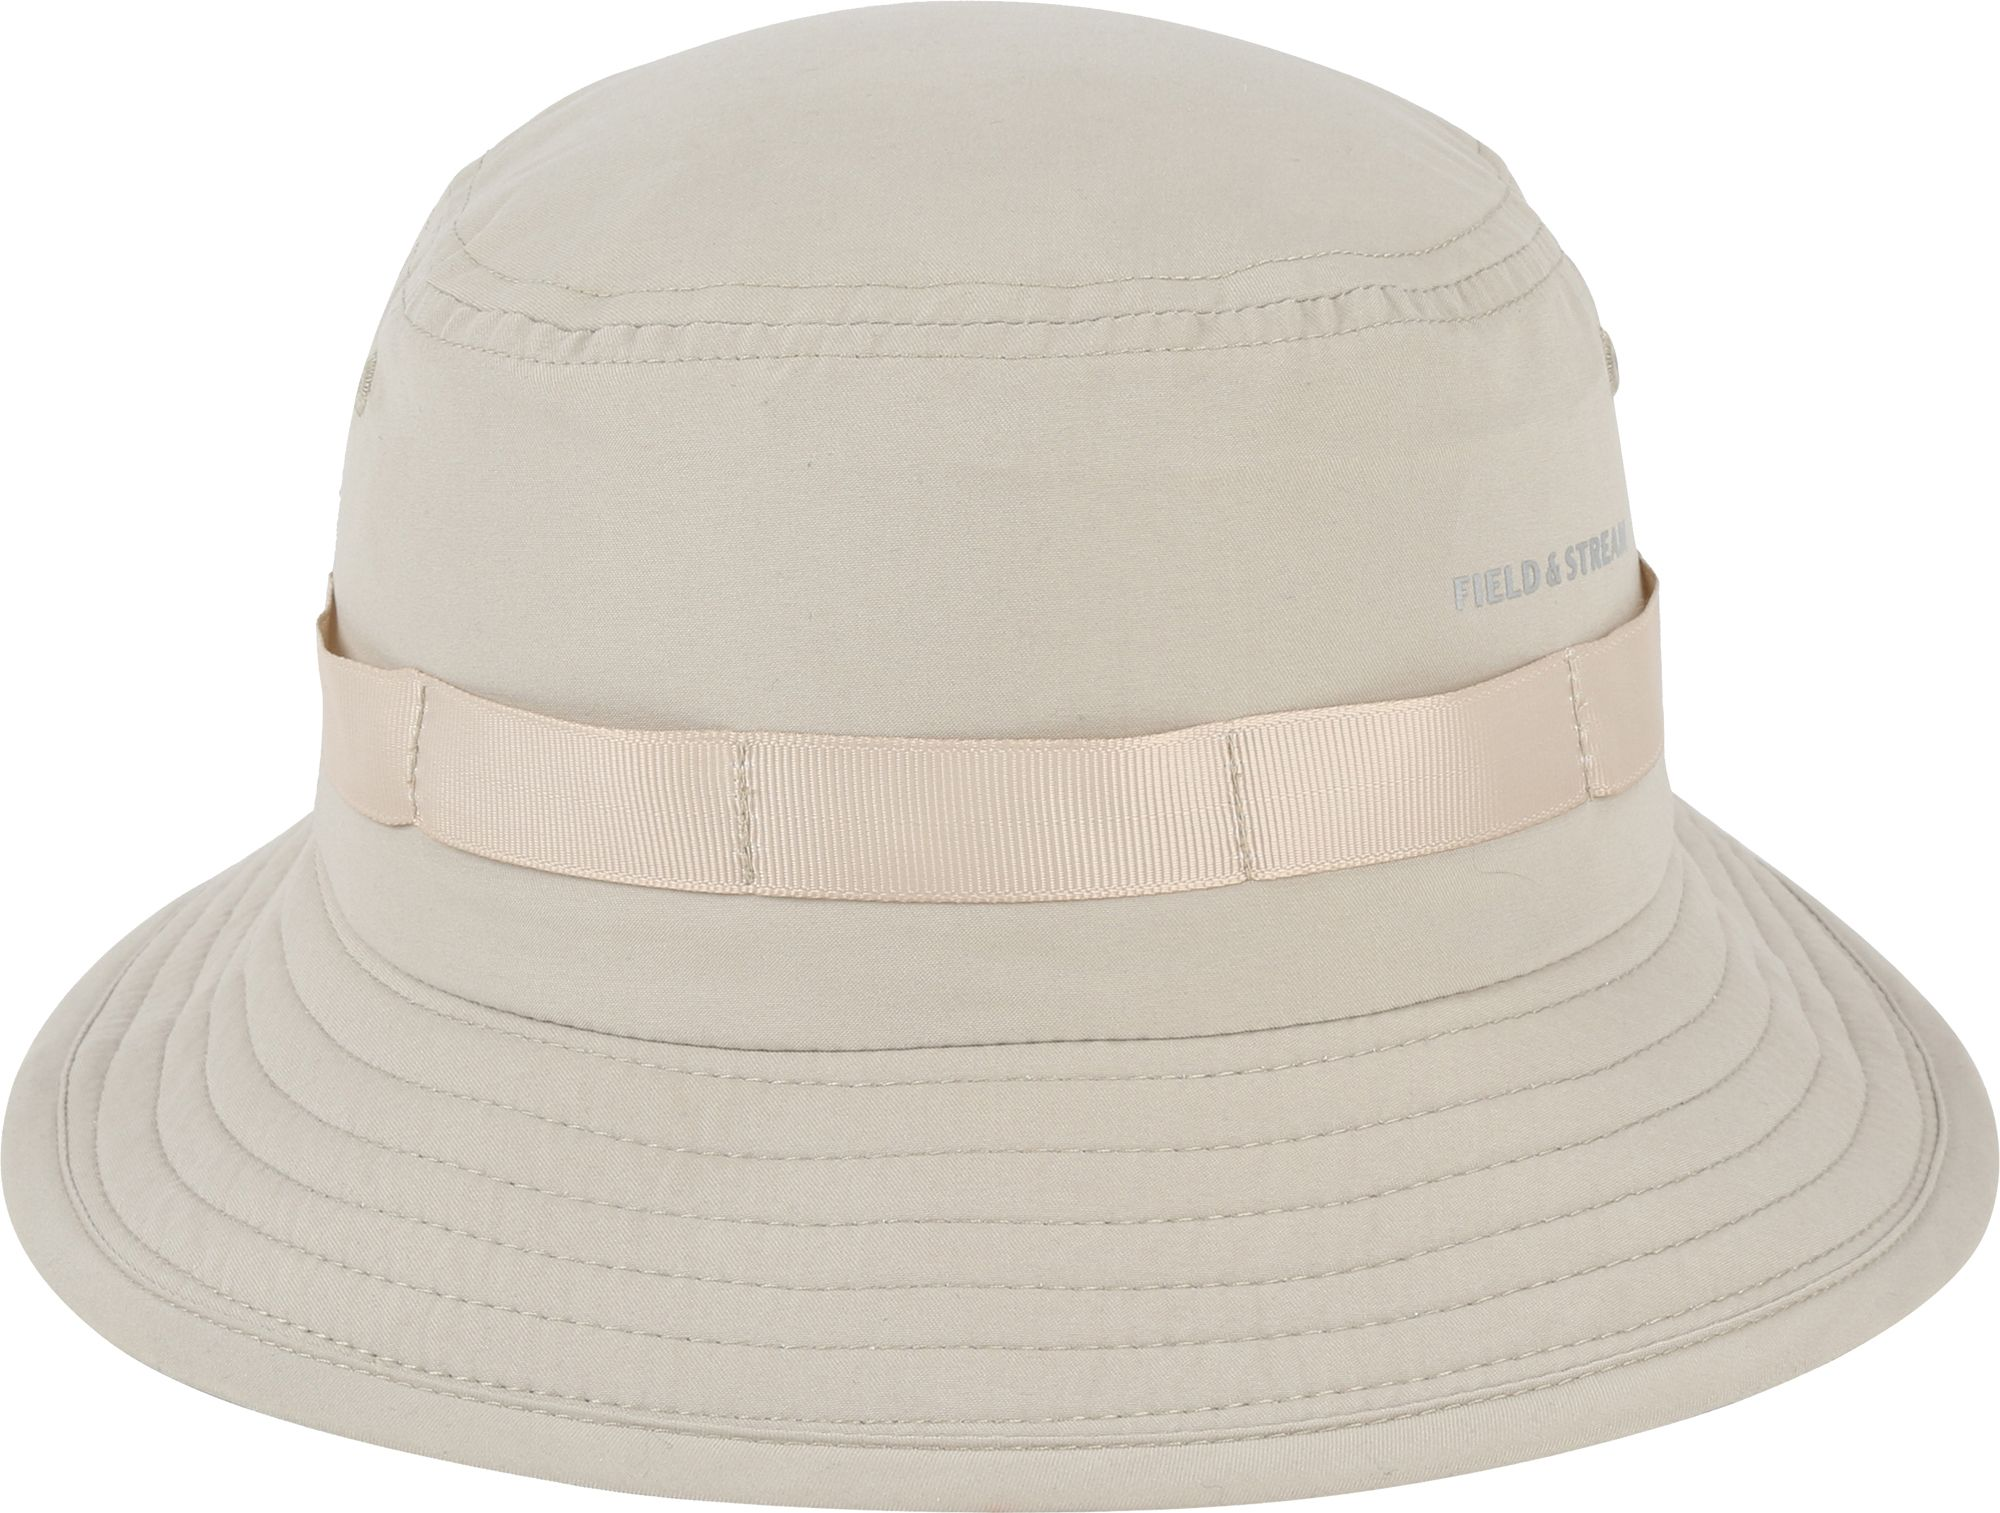 Field & Stream Youth Evershade Boonie Hat, Kids, Khaki